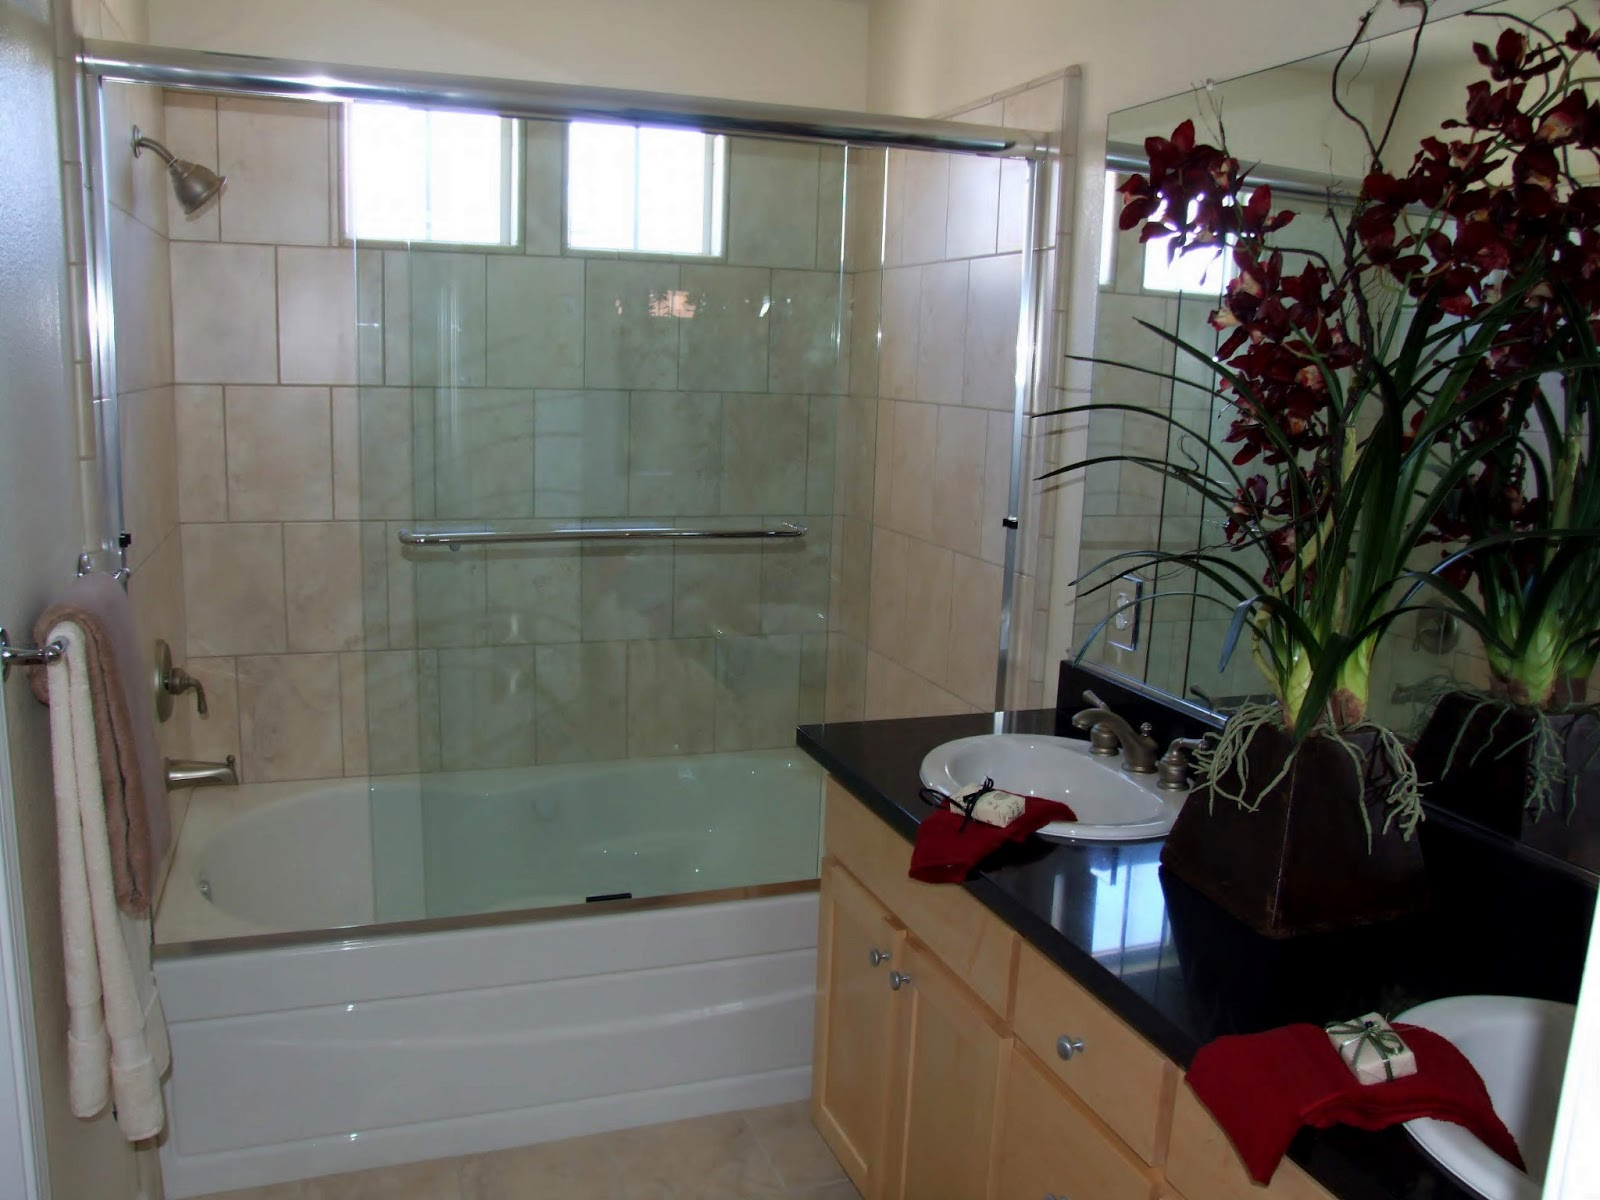 Bathroom designs melbourne Small bathroom design melbourne